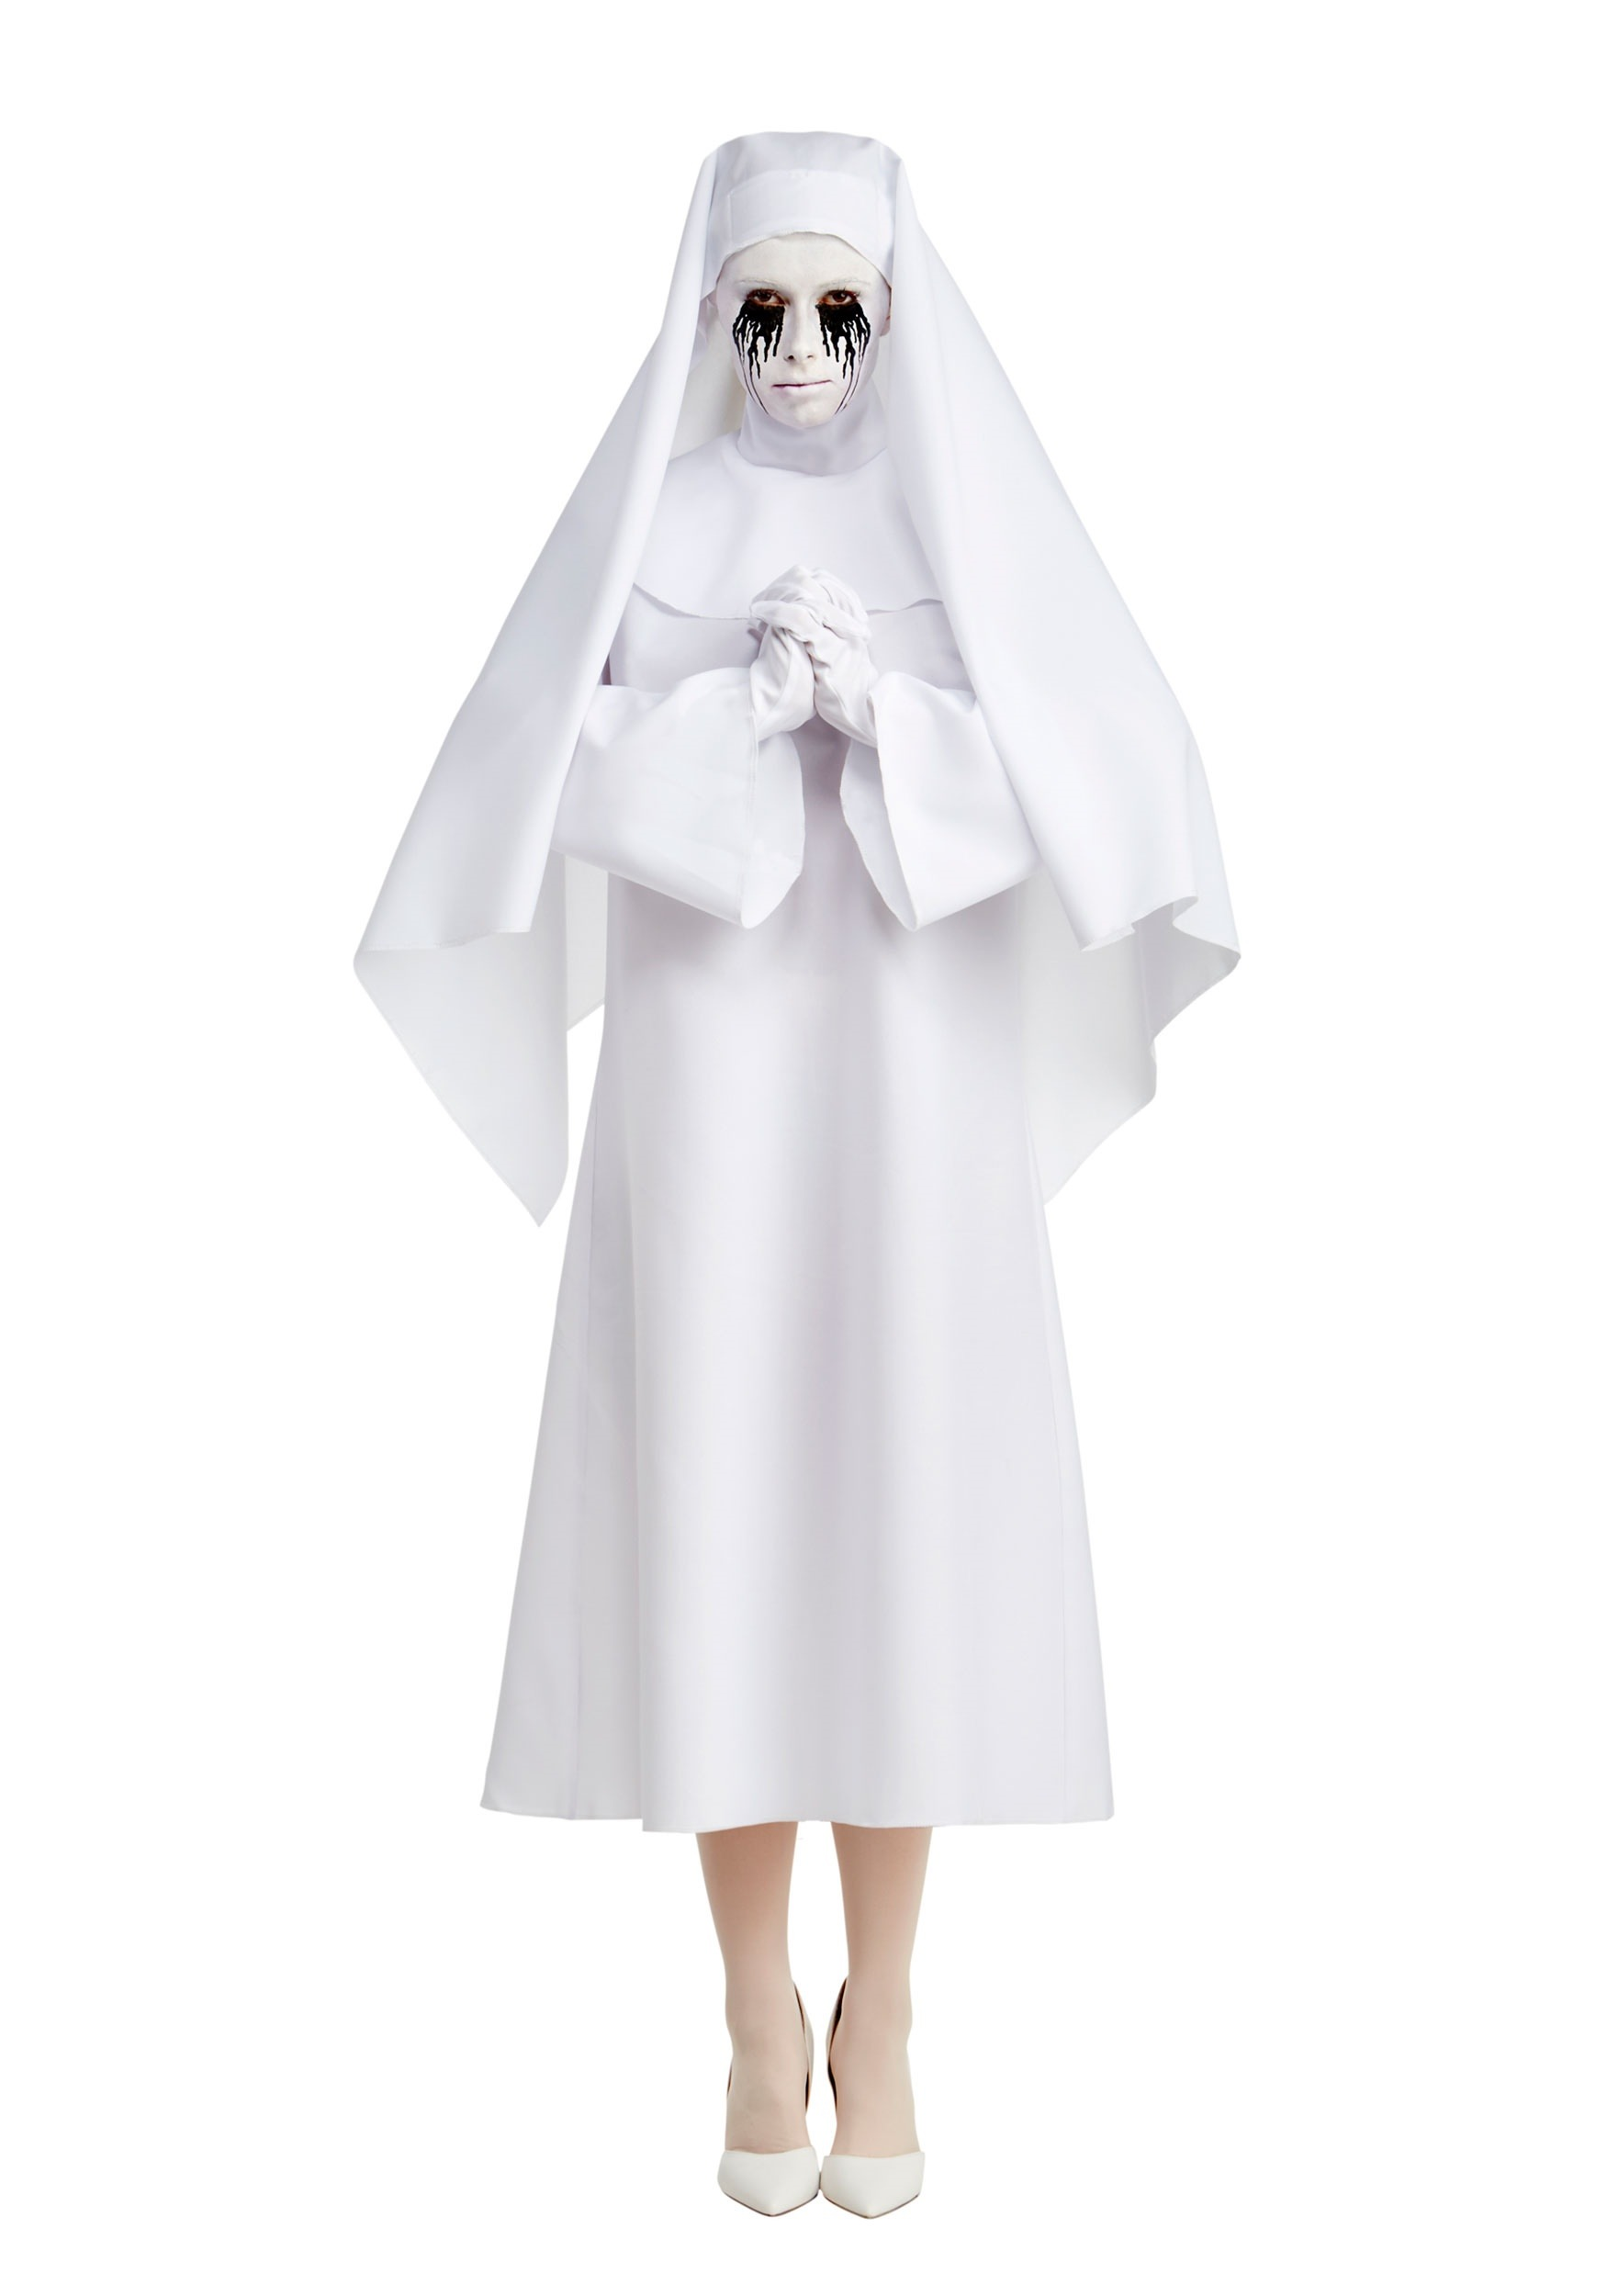 INOpets.com Anything for Pets Parents & Their Pets American Horror Story The White Nun Deluxe Fancy Dress Costume for Women